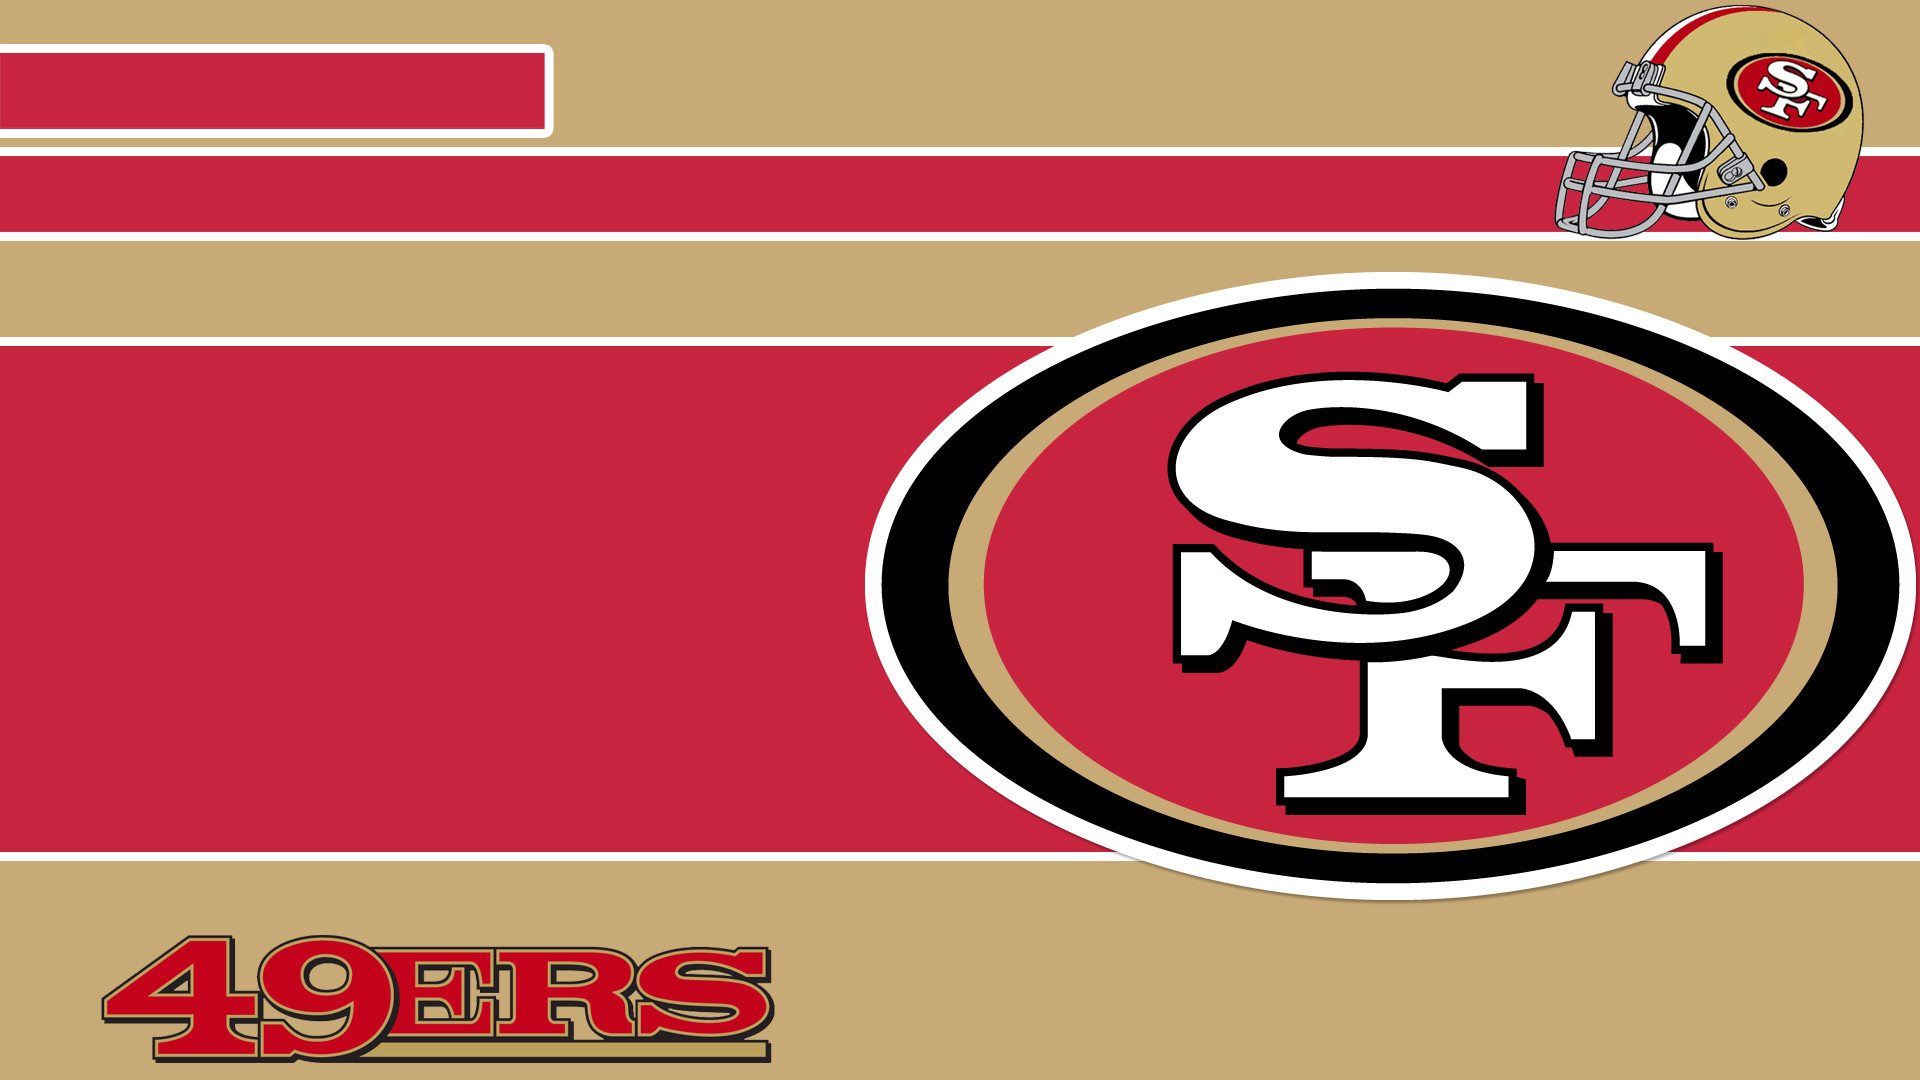 49ers wallpaper for iphone 6 65 images